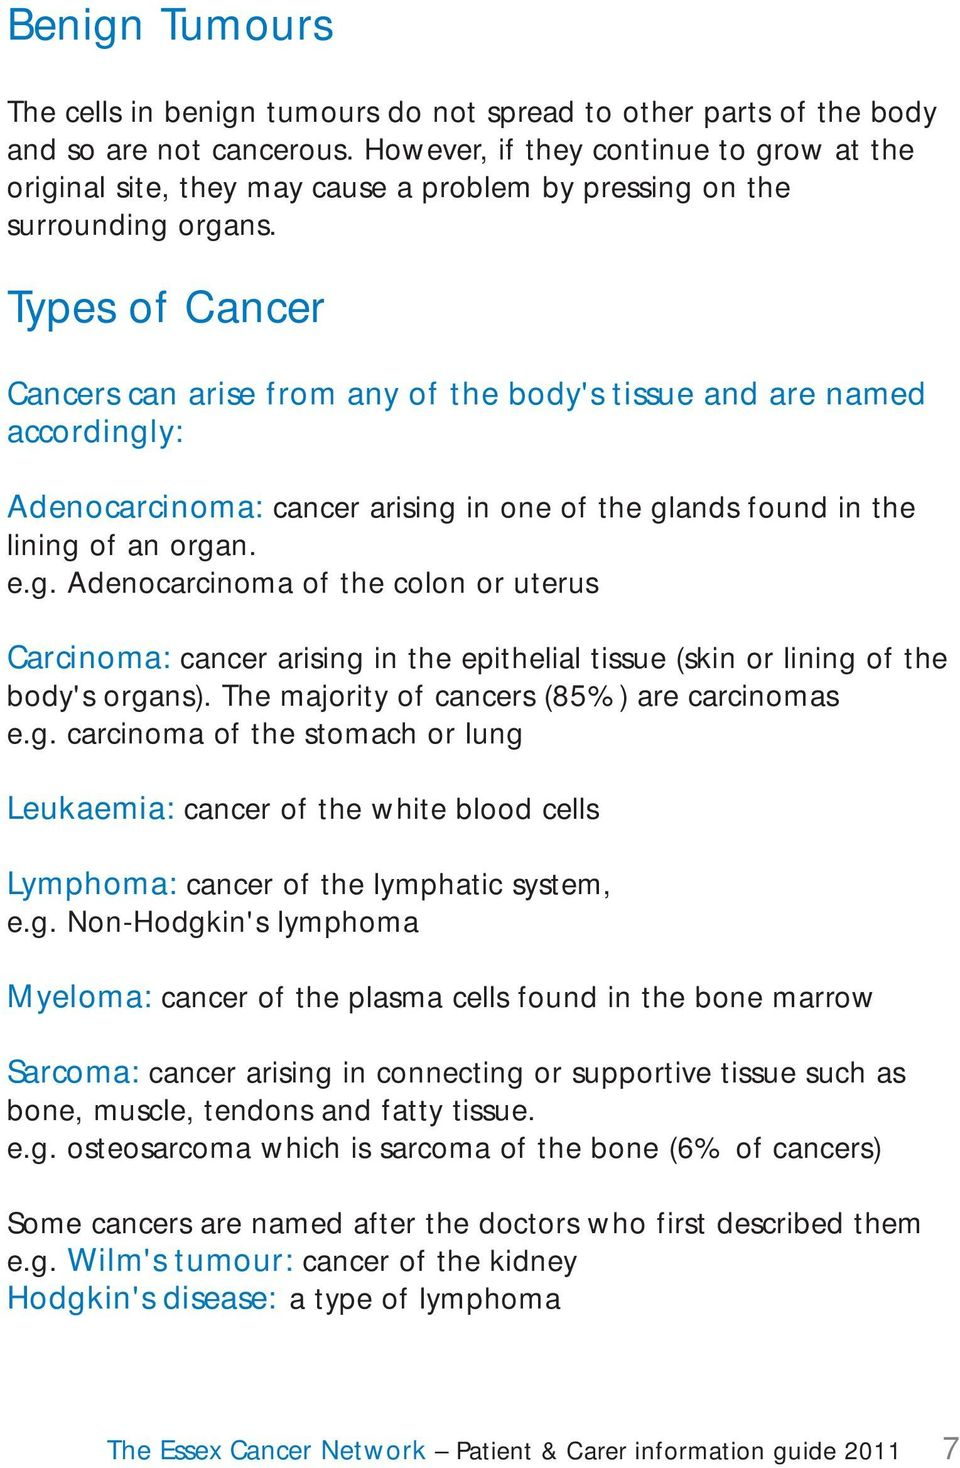 Types of Cancer Cancers can arise from any of the body's tissue and are named accordingl